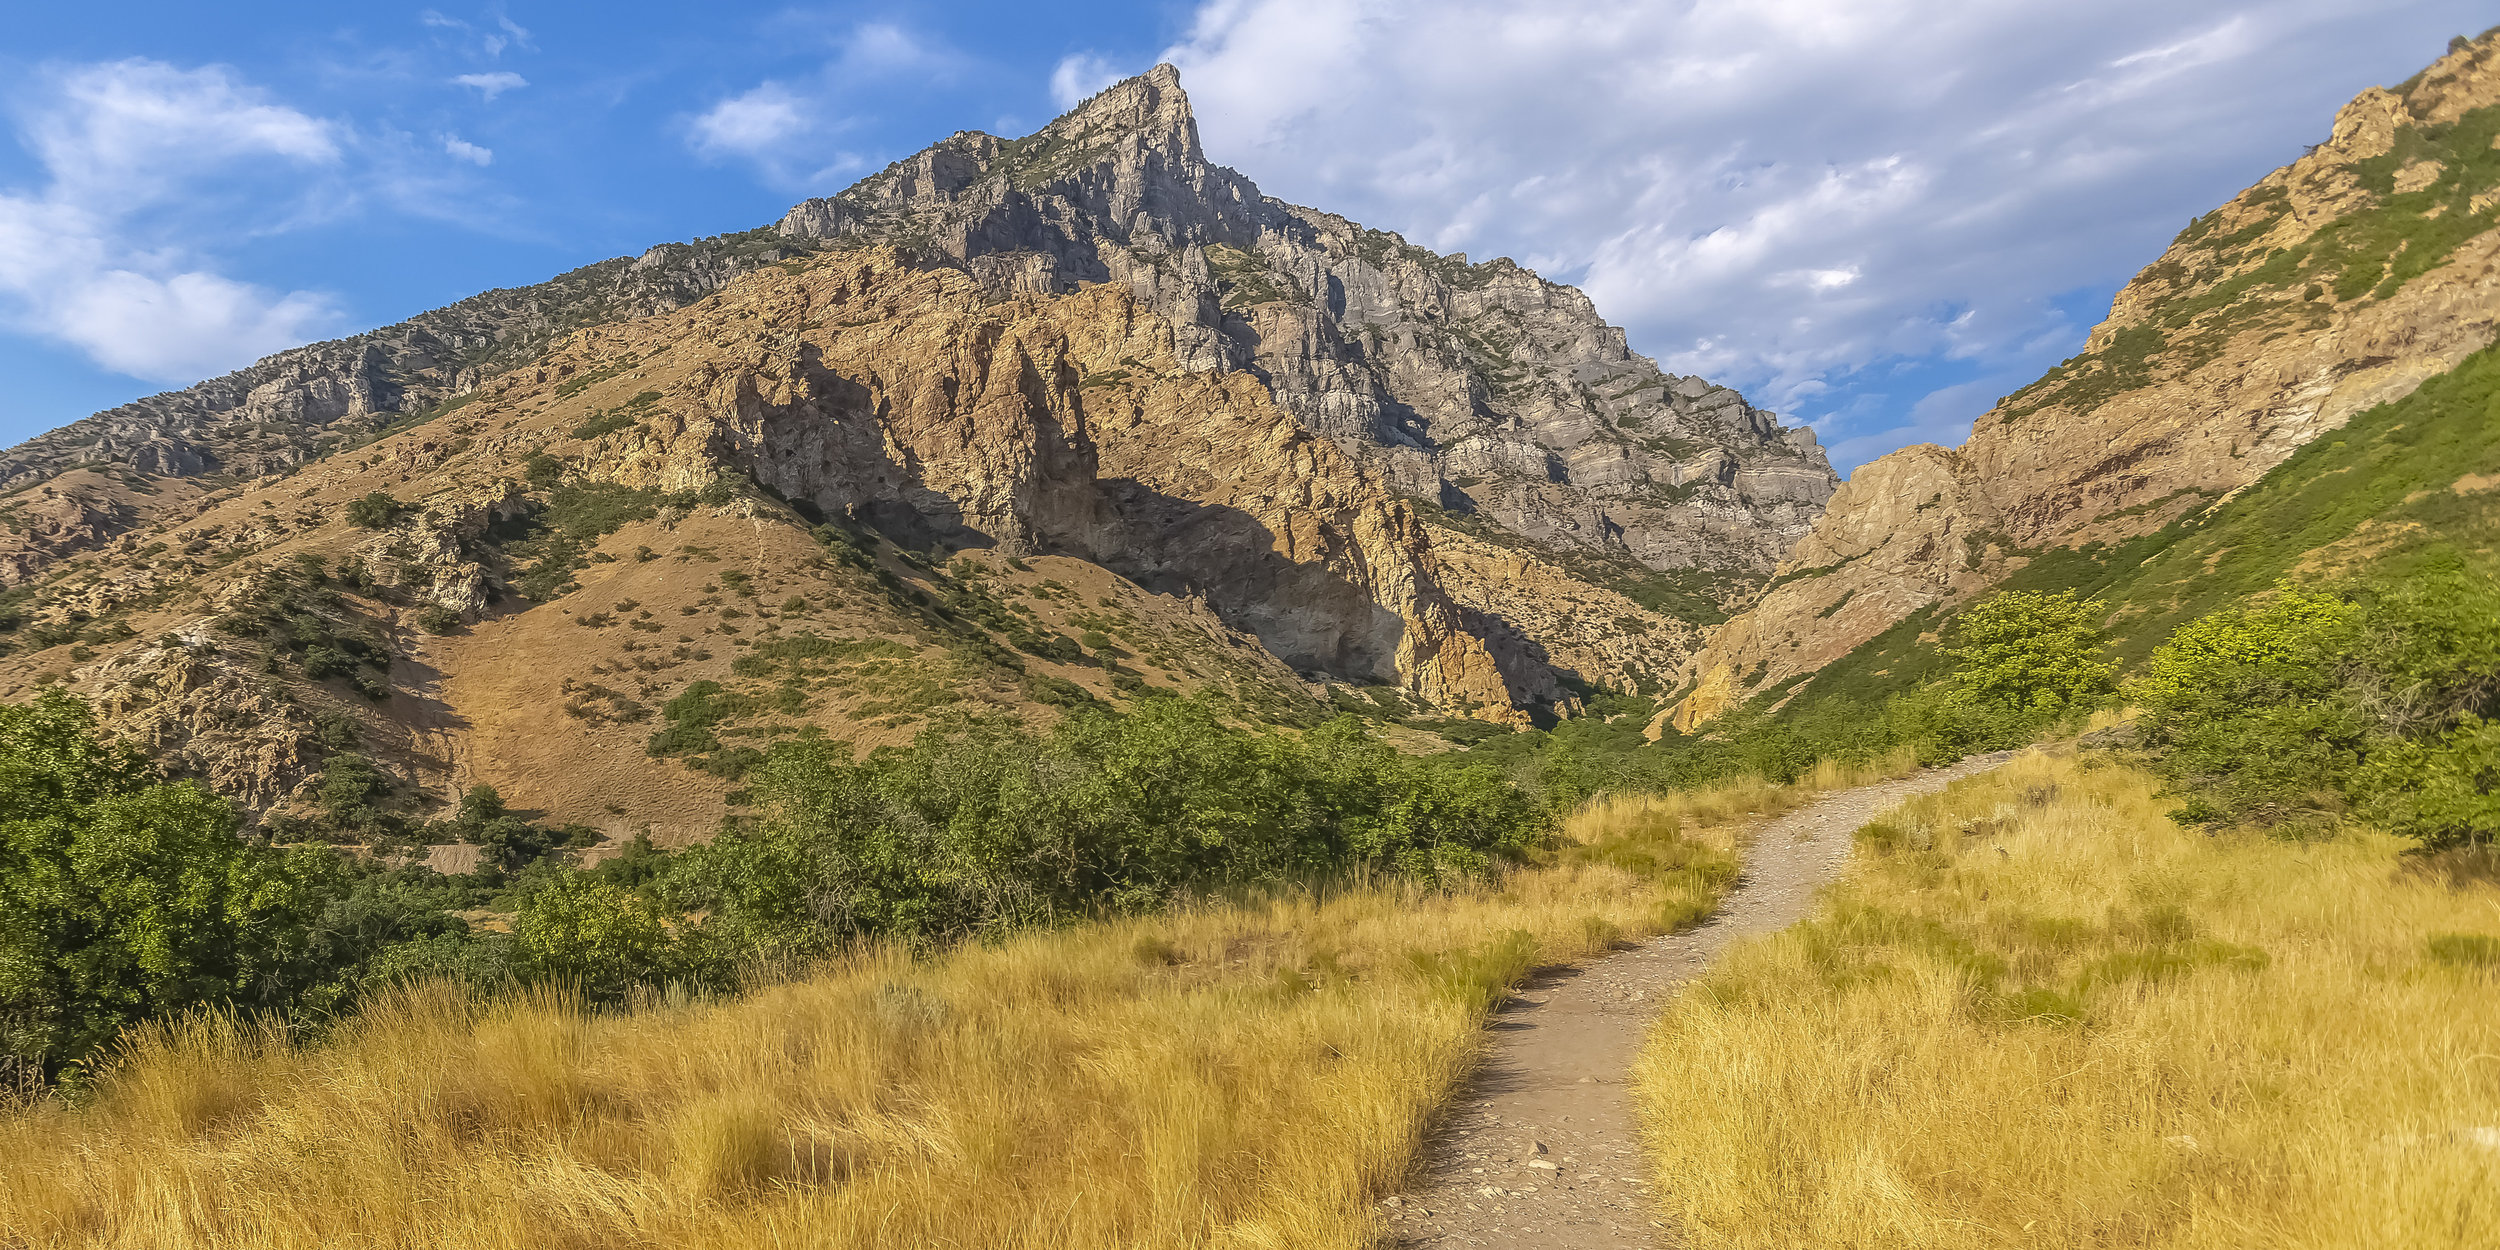 Hiking trail in the wilderness of Provo Utah.JPG